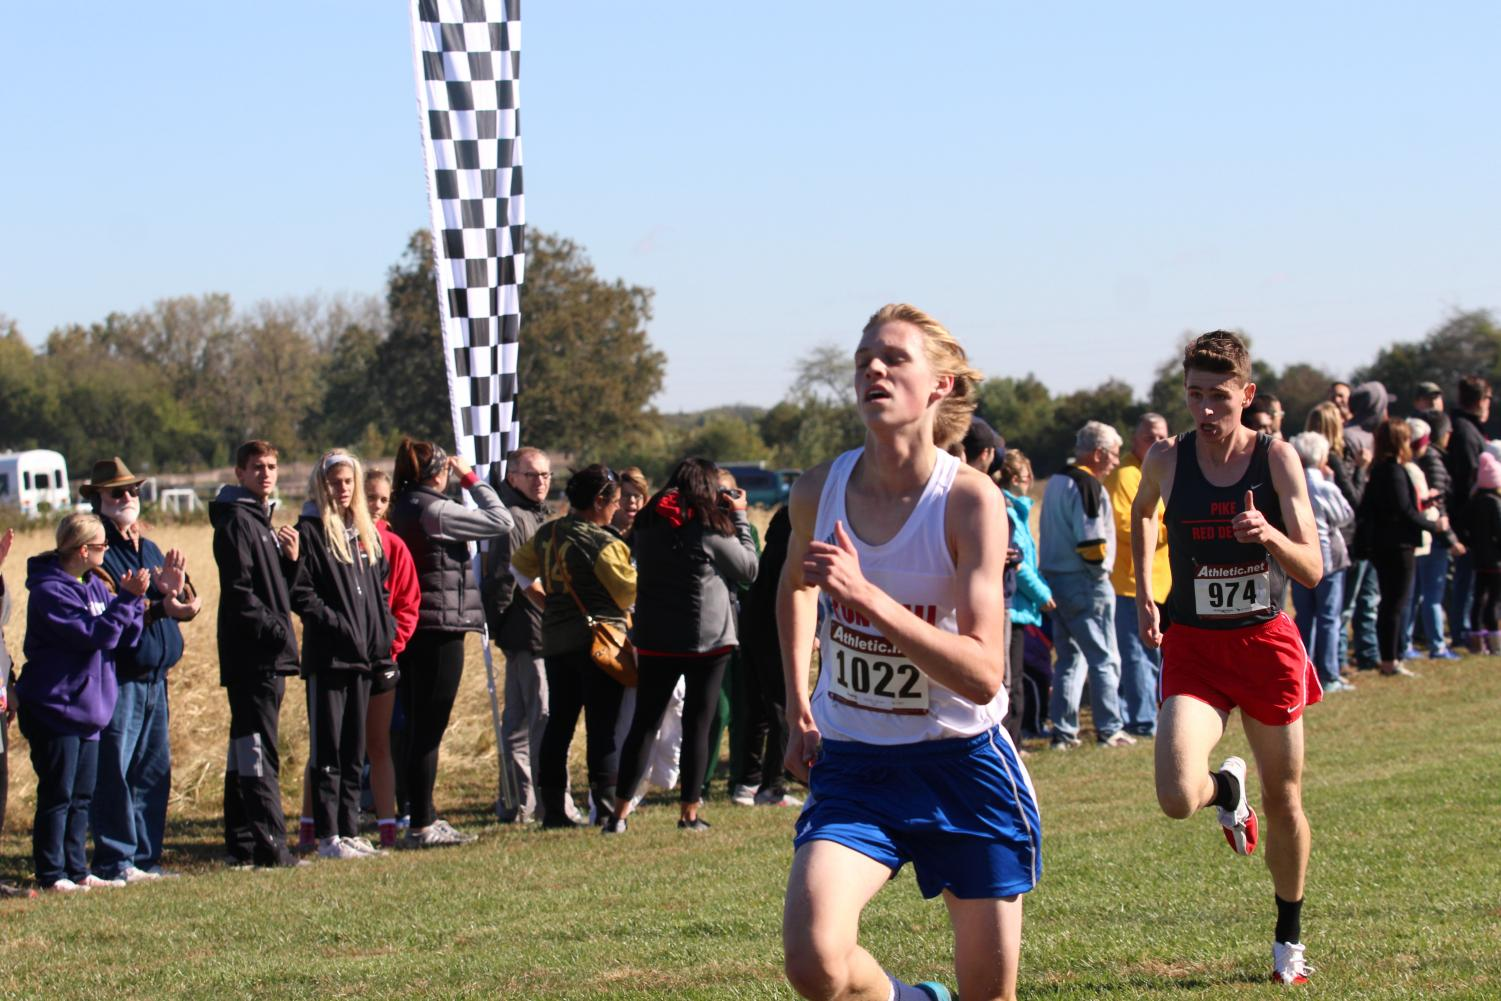 FINISHING STRONG: Senior Nick Perkins races towards the finish line in the semi-state meet. Perkins placed 3rd in semi-state with a time of 15:48.7, breaking his previous Roncalli record